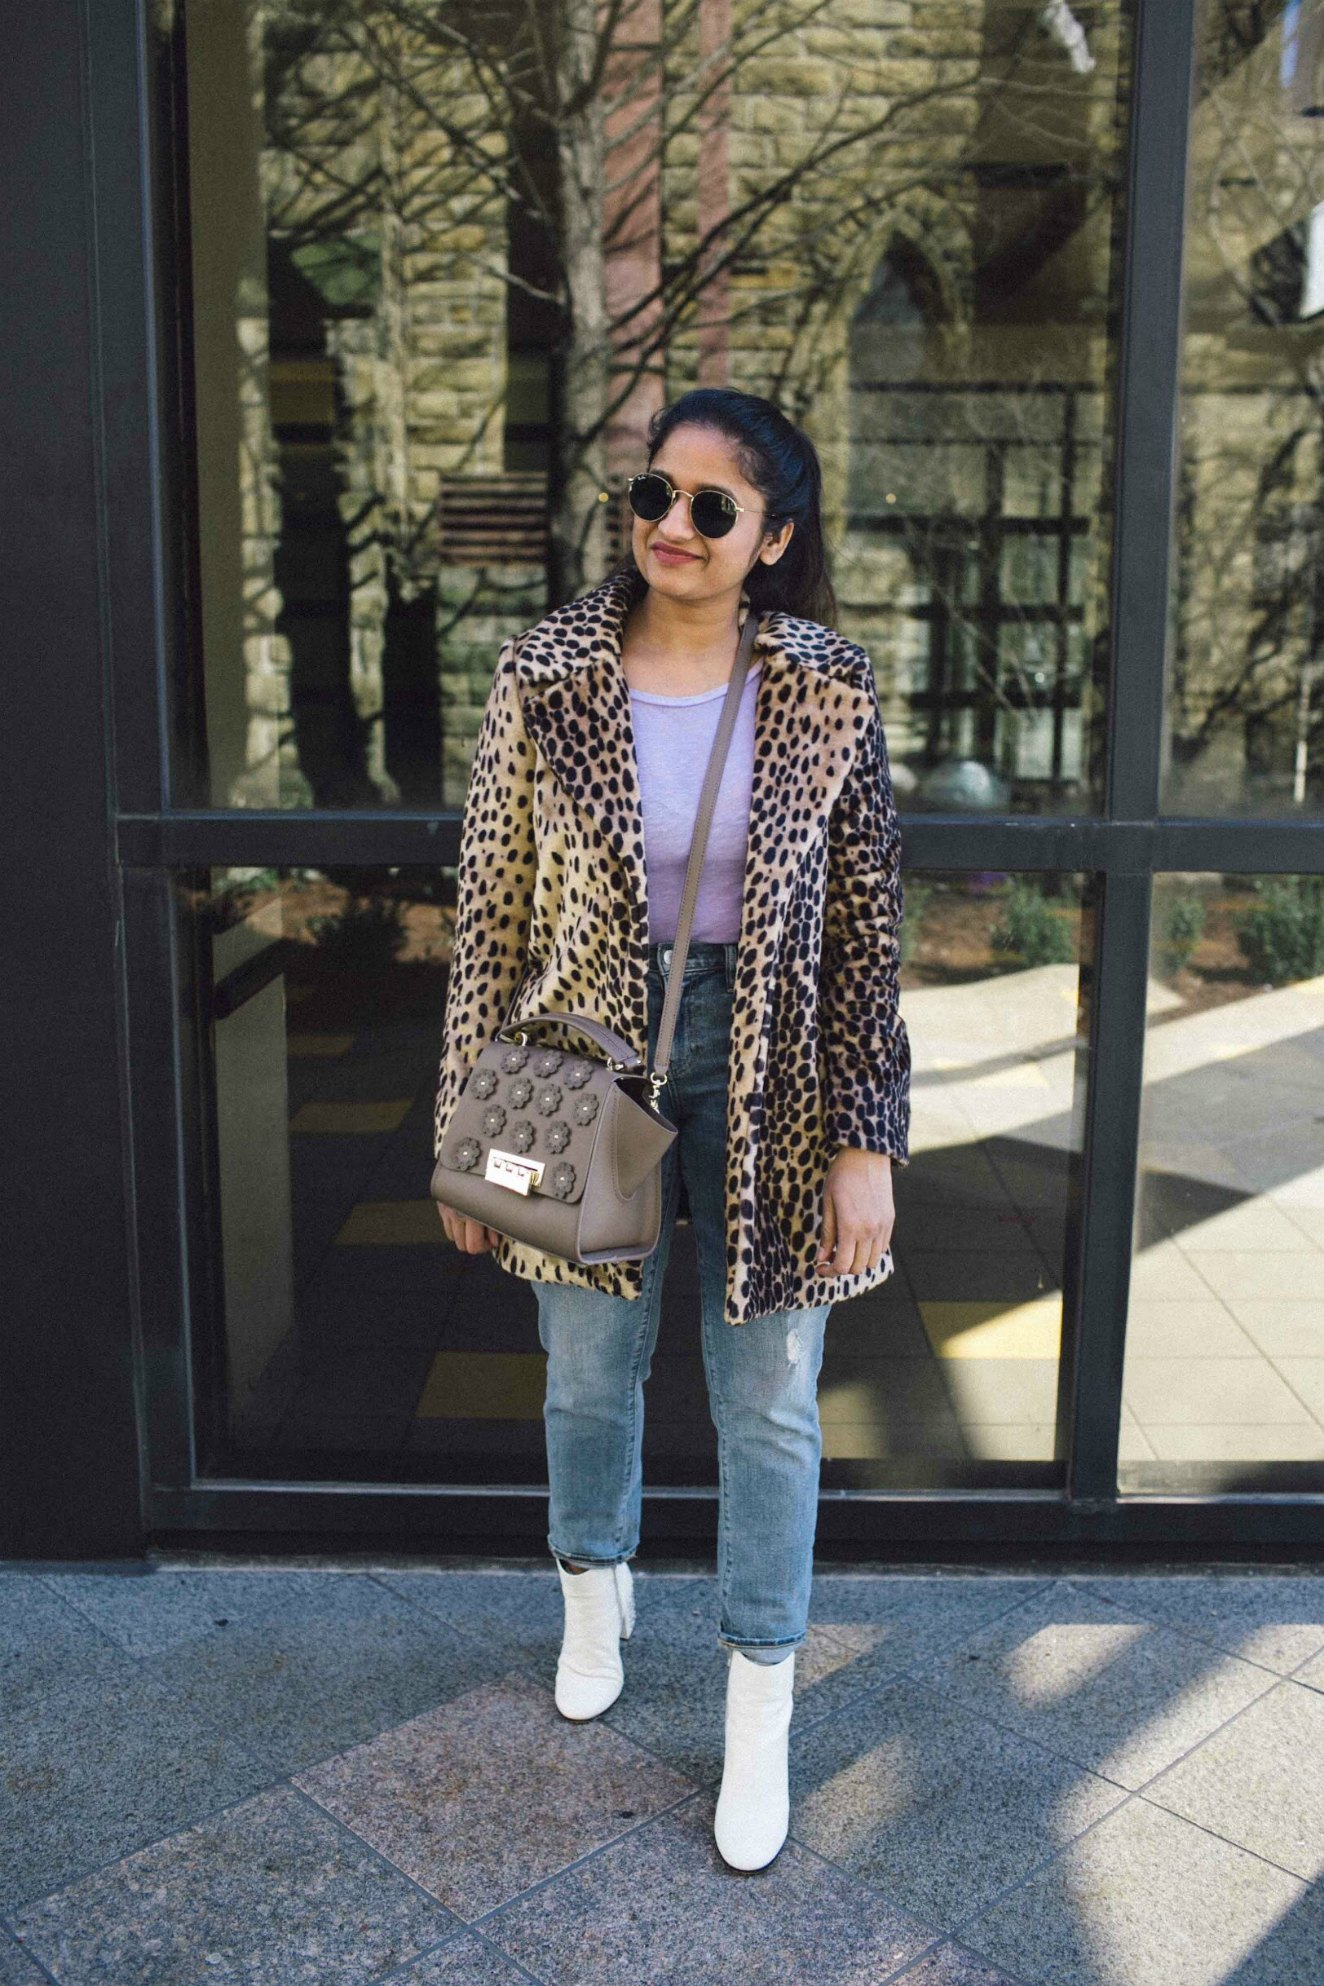 Lifestyle Blog Dreaming Loud sharing how to wear leopard coat in casual ways with pastel colors | The Leopard Print Trend featured by popular US modest fashion blogger, Dreaming Loud